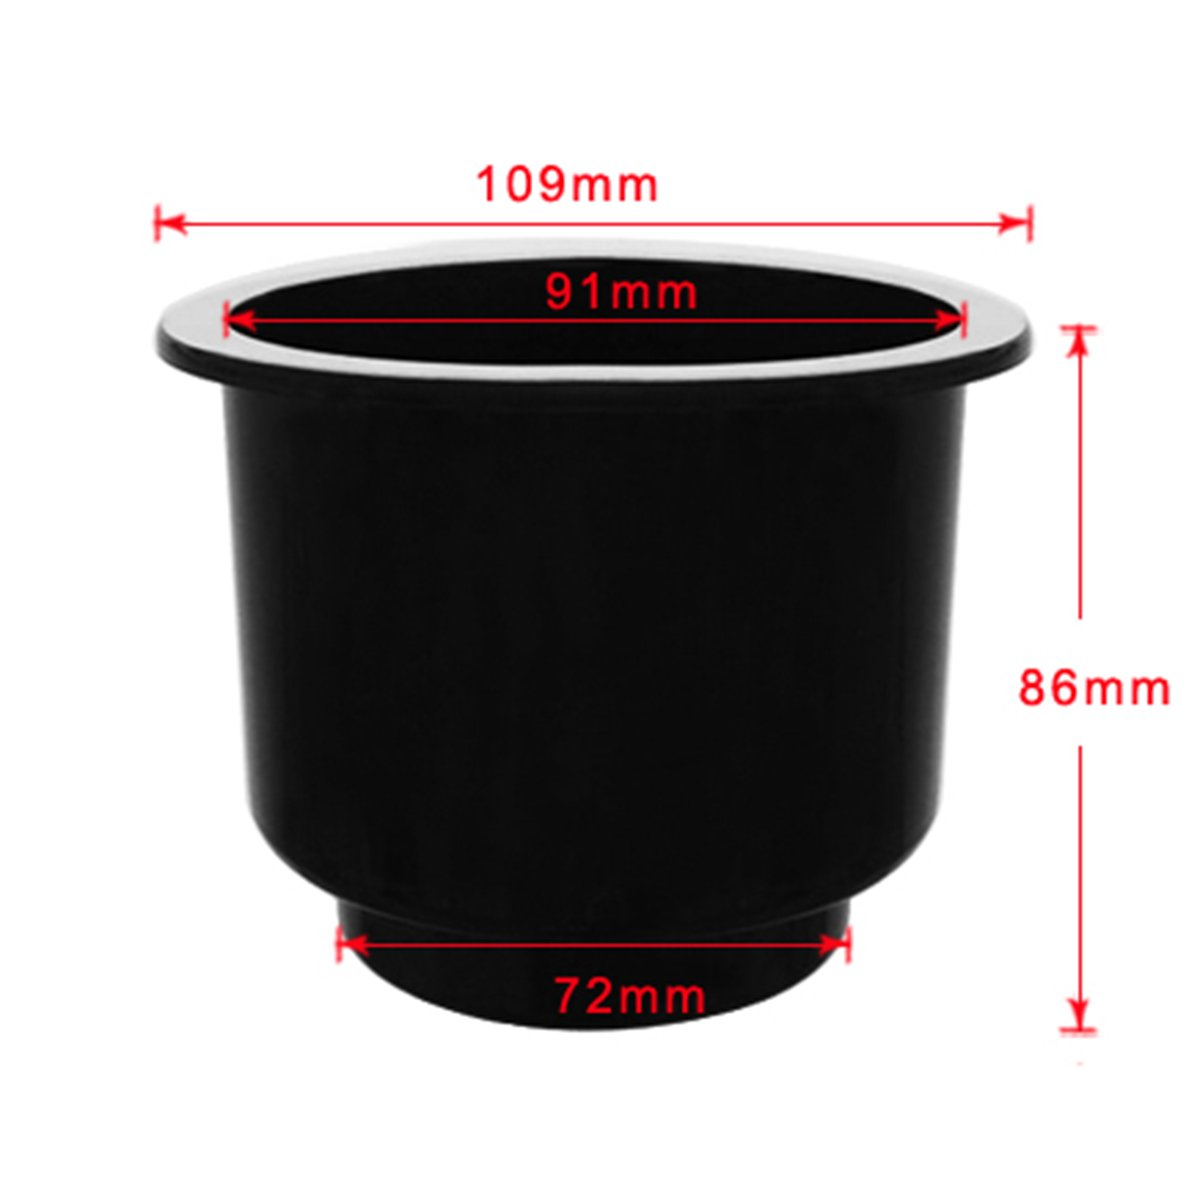 Amazon.com: WINOMO Black Recessed Cup Drink Holder Cup Holder for SUV Truck Camper Rv Trailer(Black): Automotive